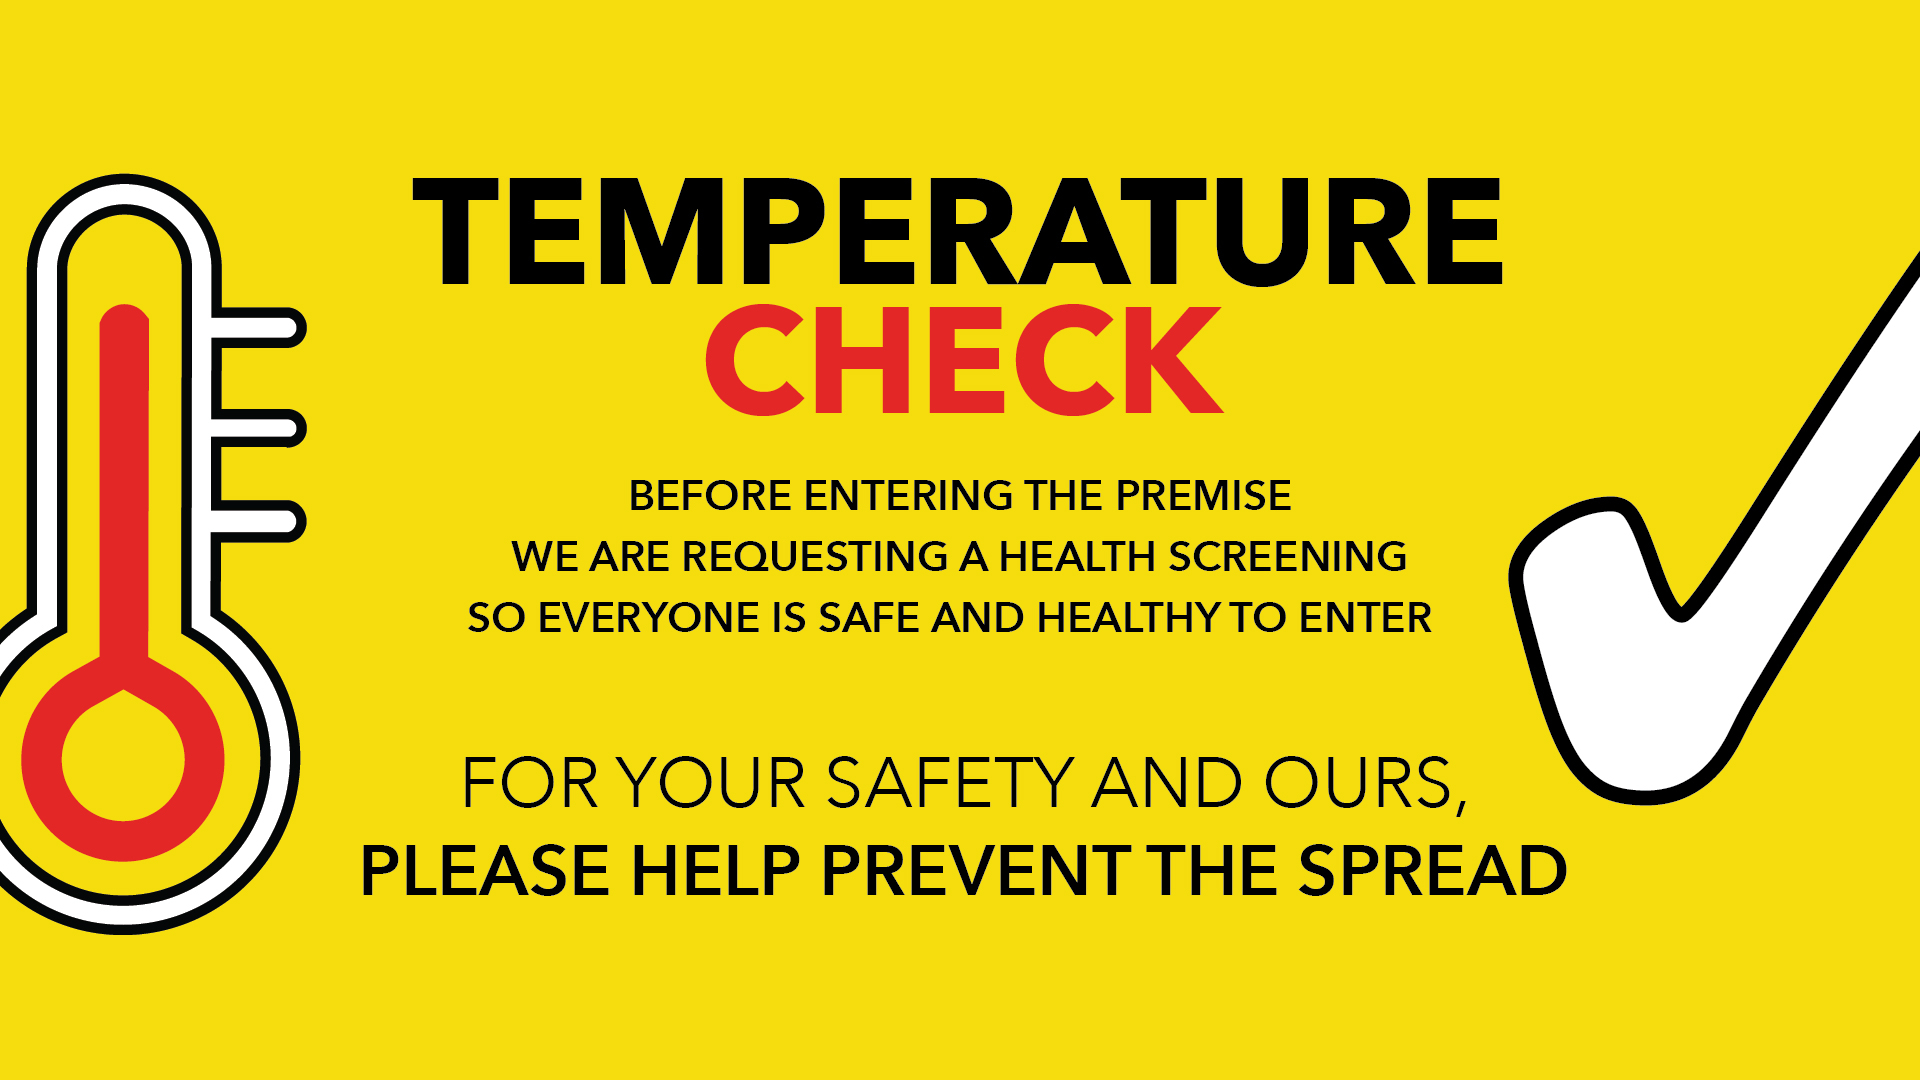 For Your Safety And Ours - Temperature Check Digital Signage Image